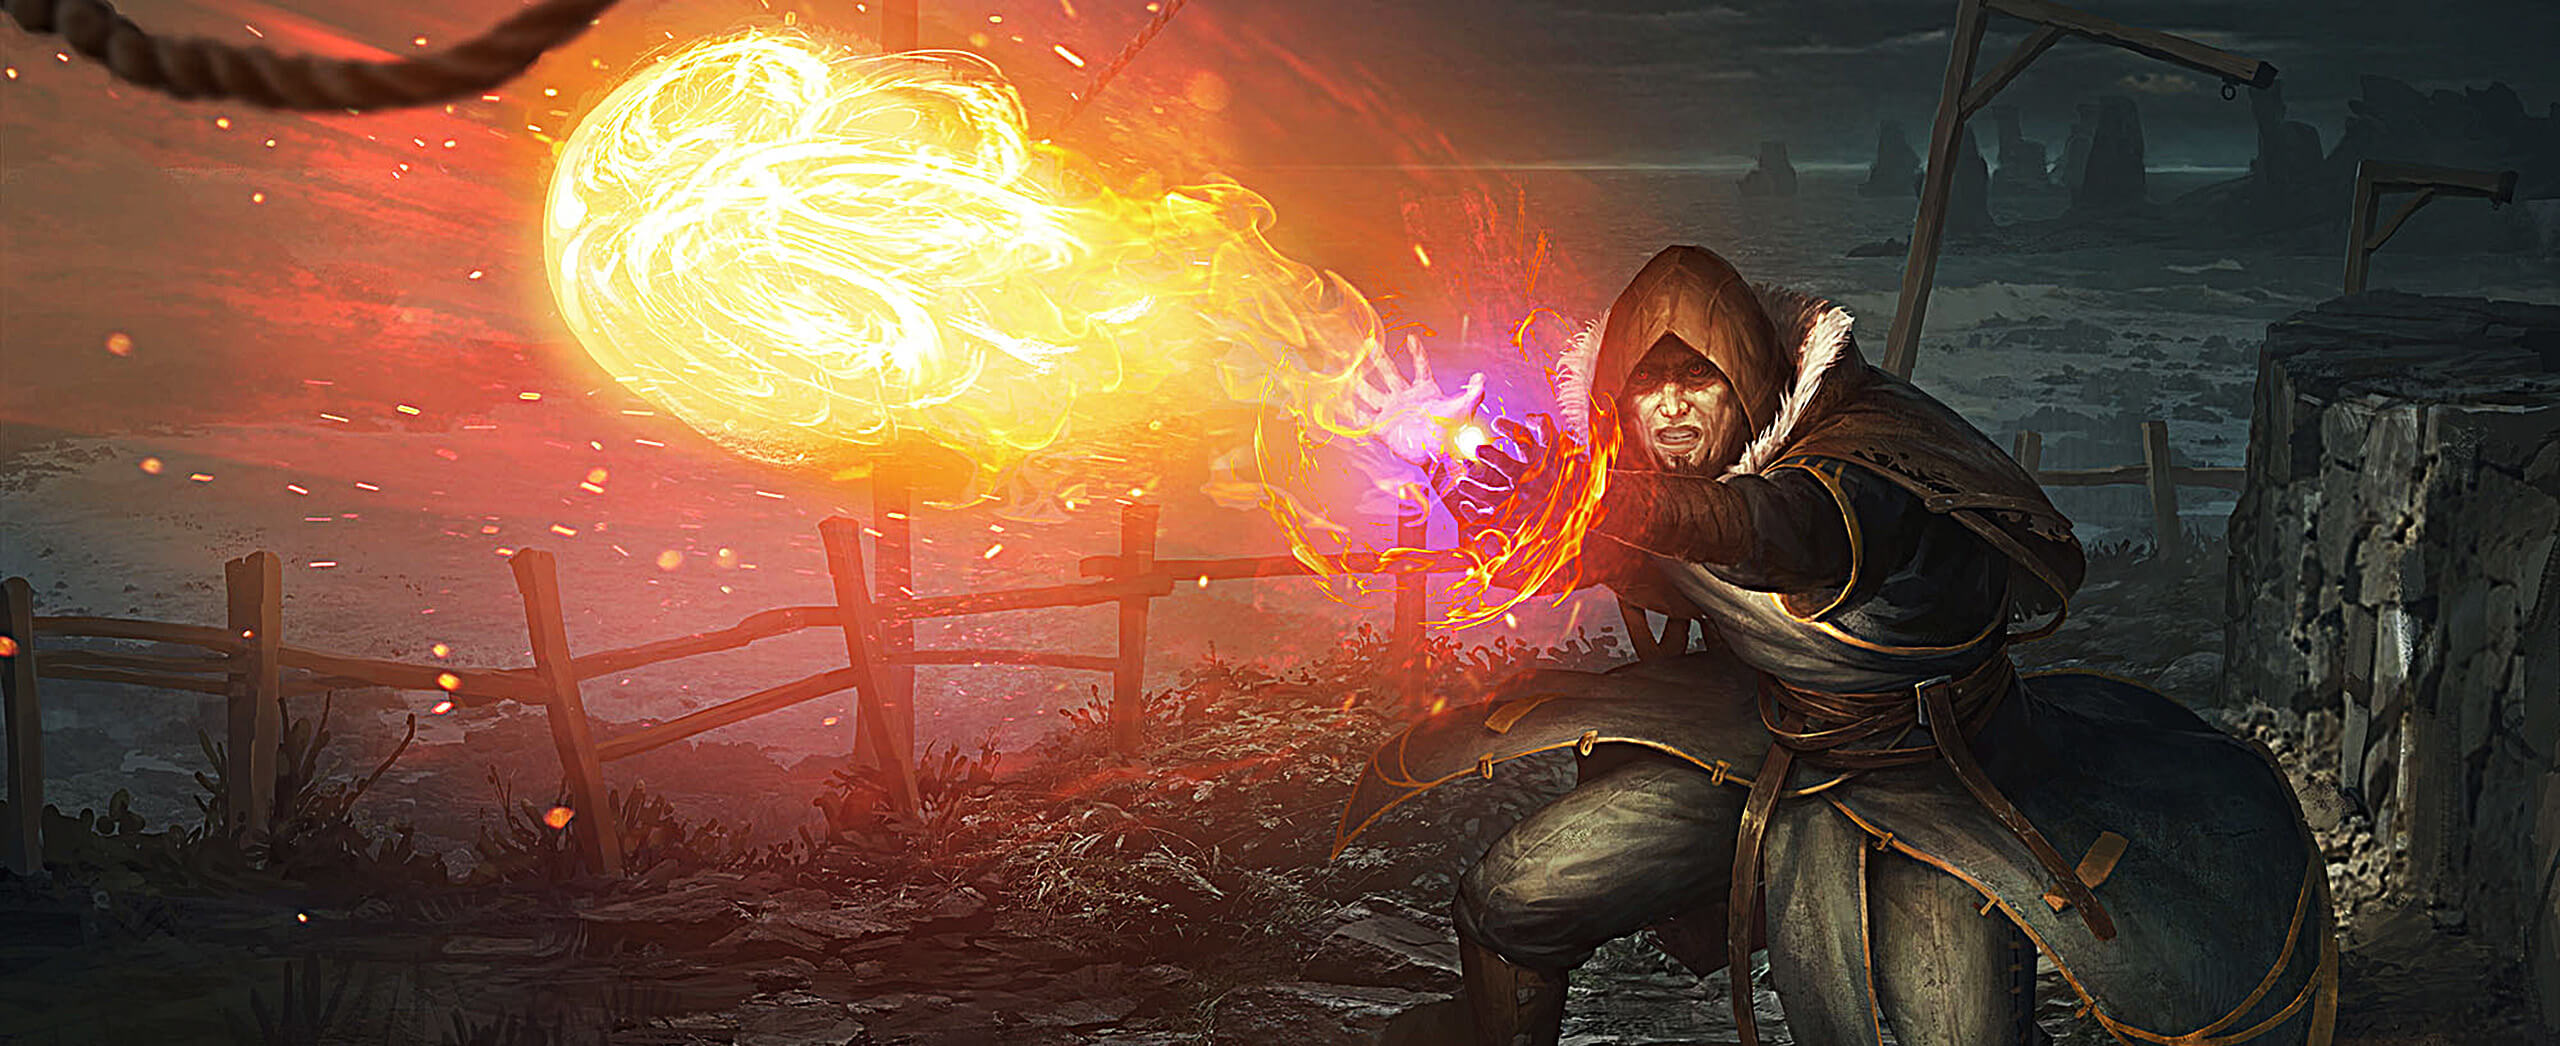 The Elder Scrolls: Legends | Beginner's Guide to Attributes and Classes